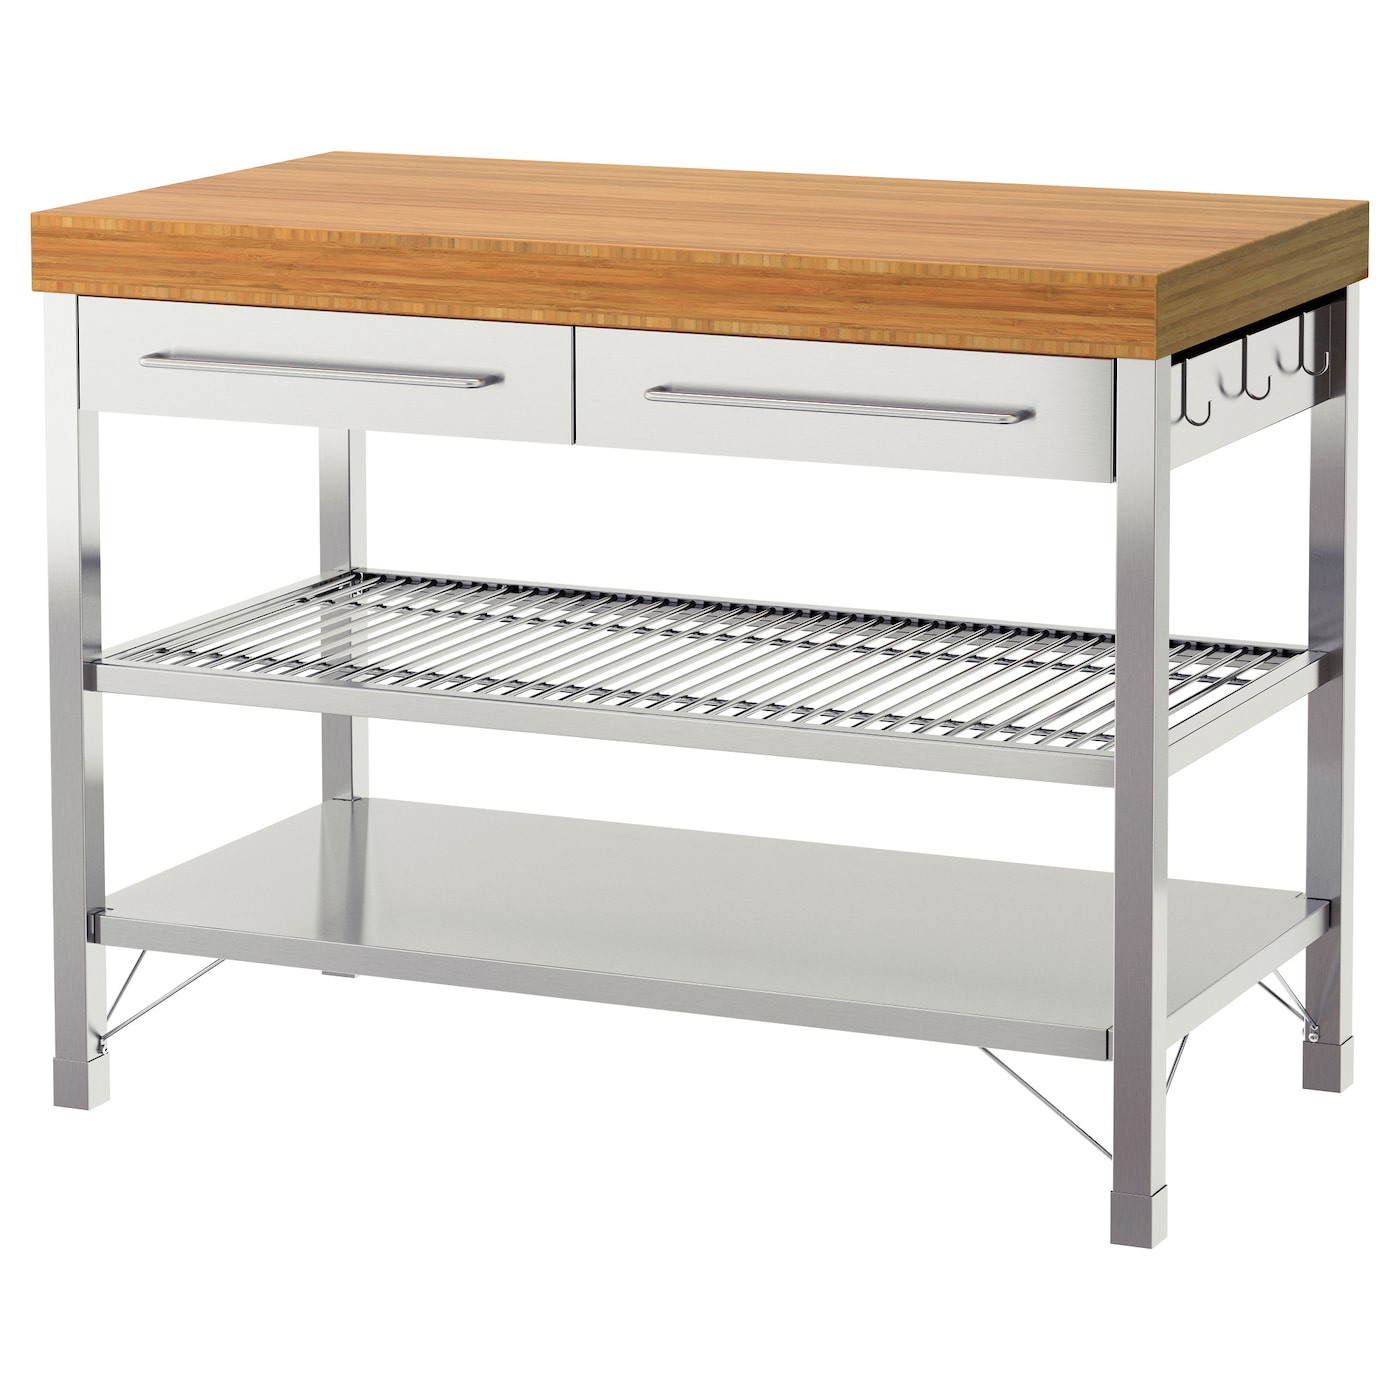 Kitchen Utility Table Wood